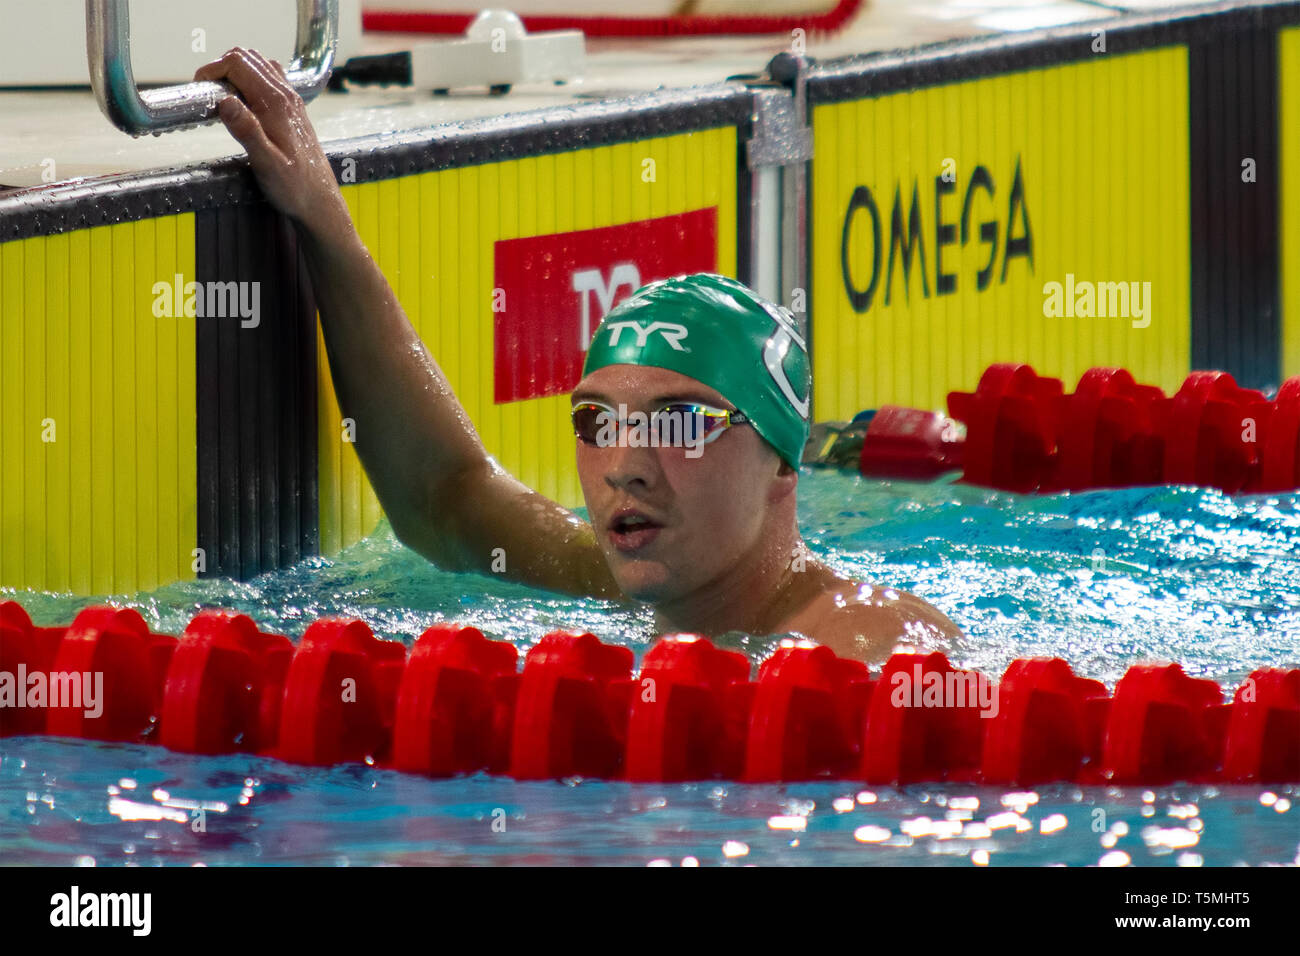 Daniel Jervis (Swansea University) reacts after winning the men's open 1,500 metres freestyle last heat, during Day 3 of the 2019 British Swimming Cha - Stock Image